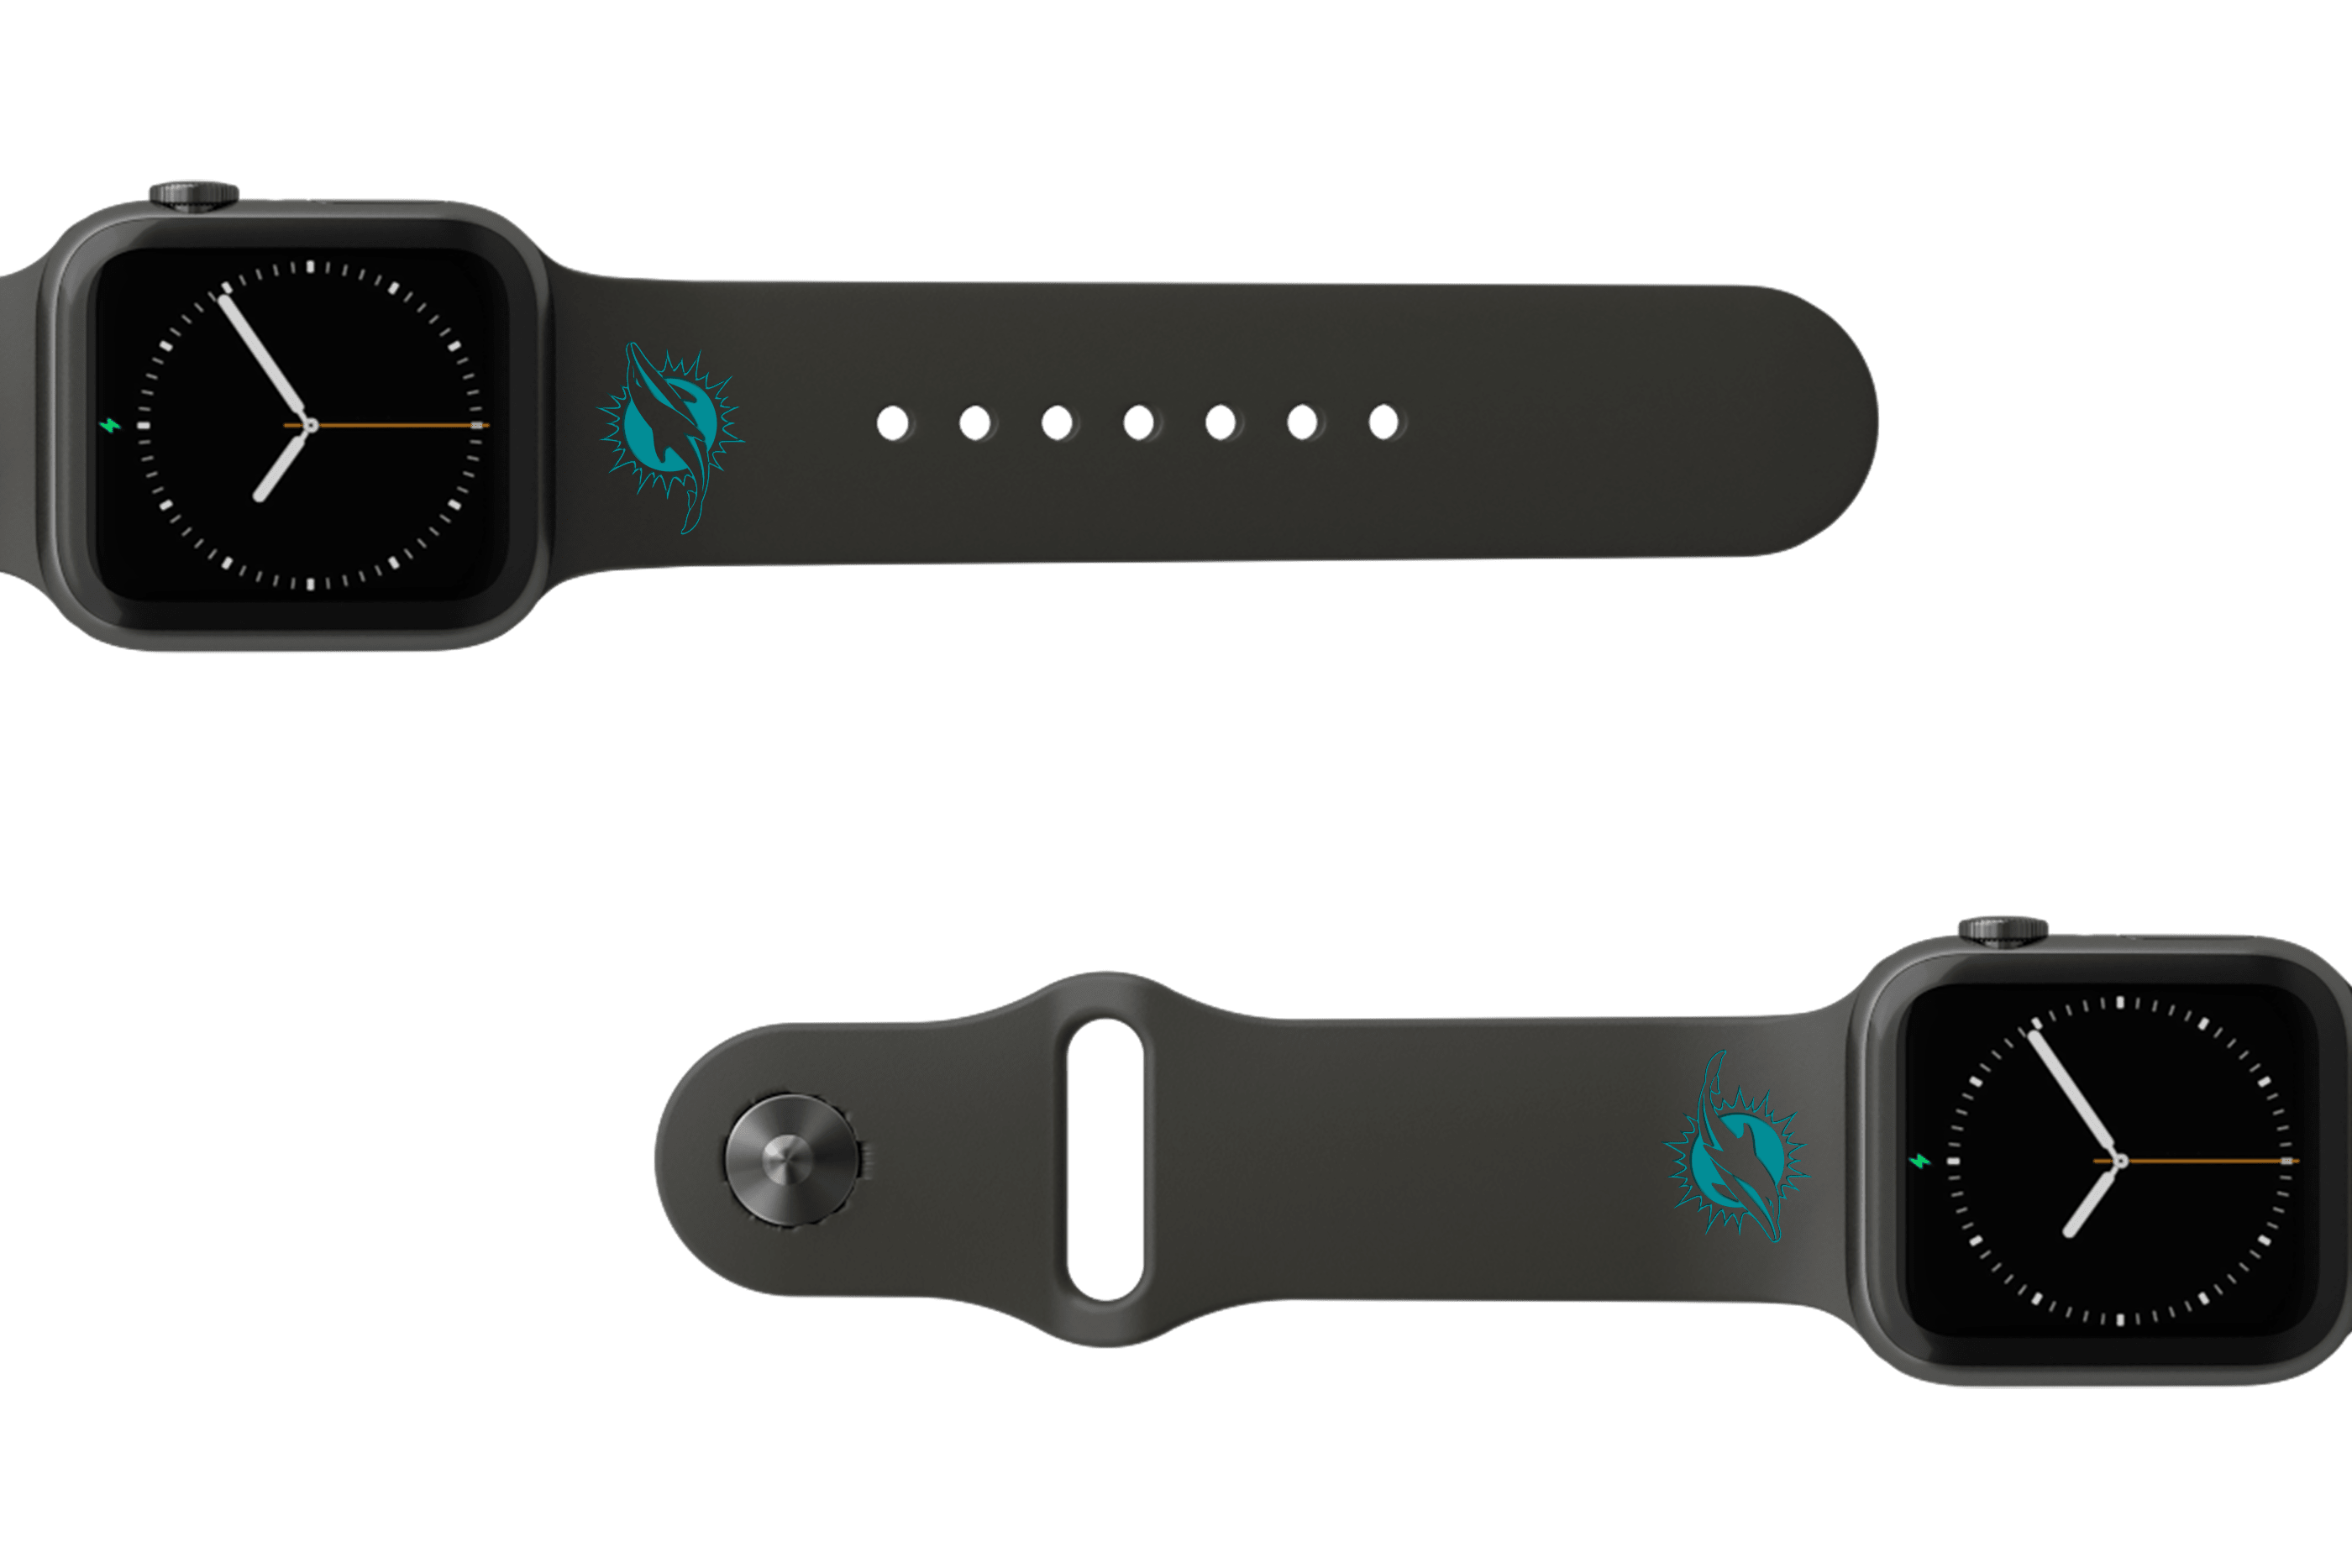 NFL Miami Dolphins Black   apple watch band with gray hardware viewed from top down